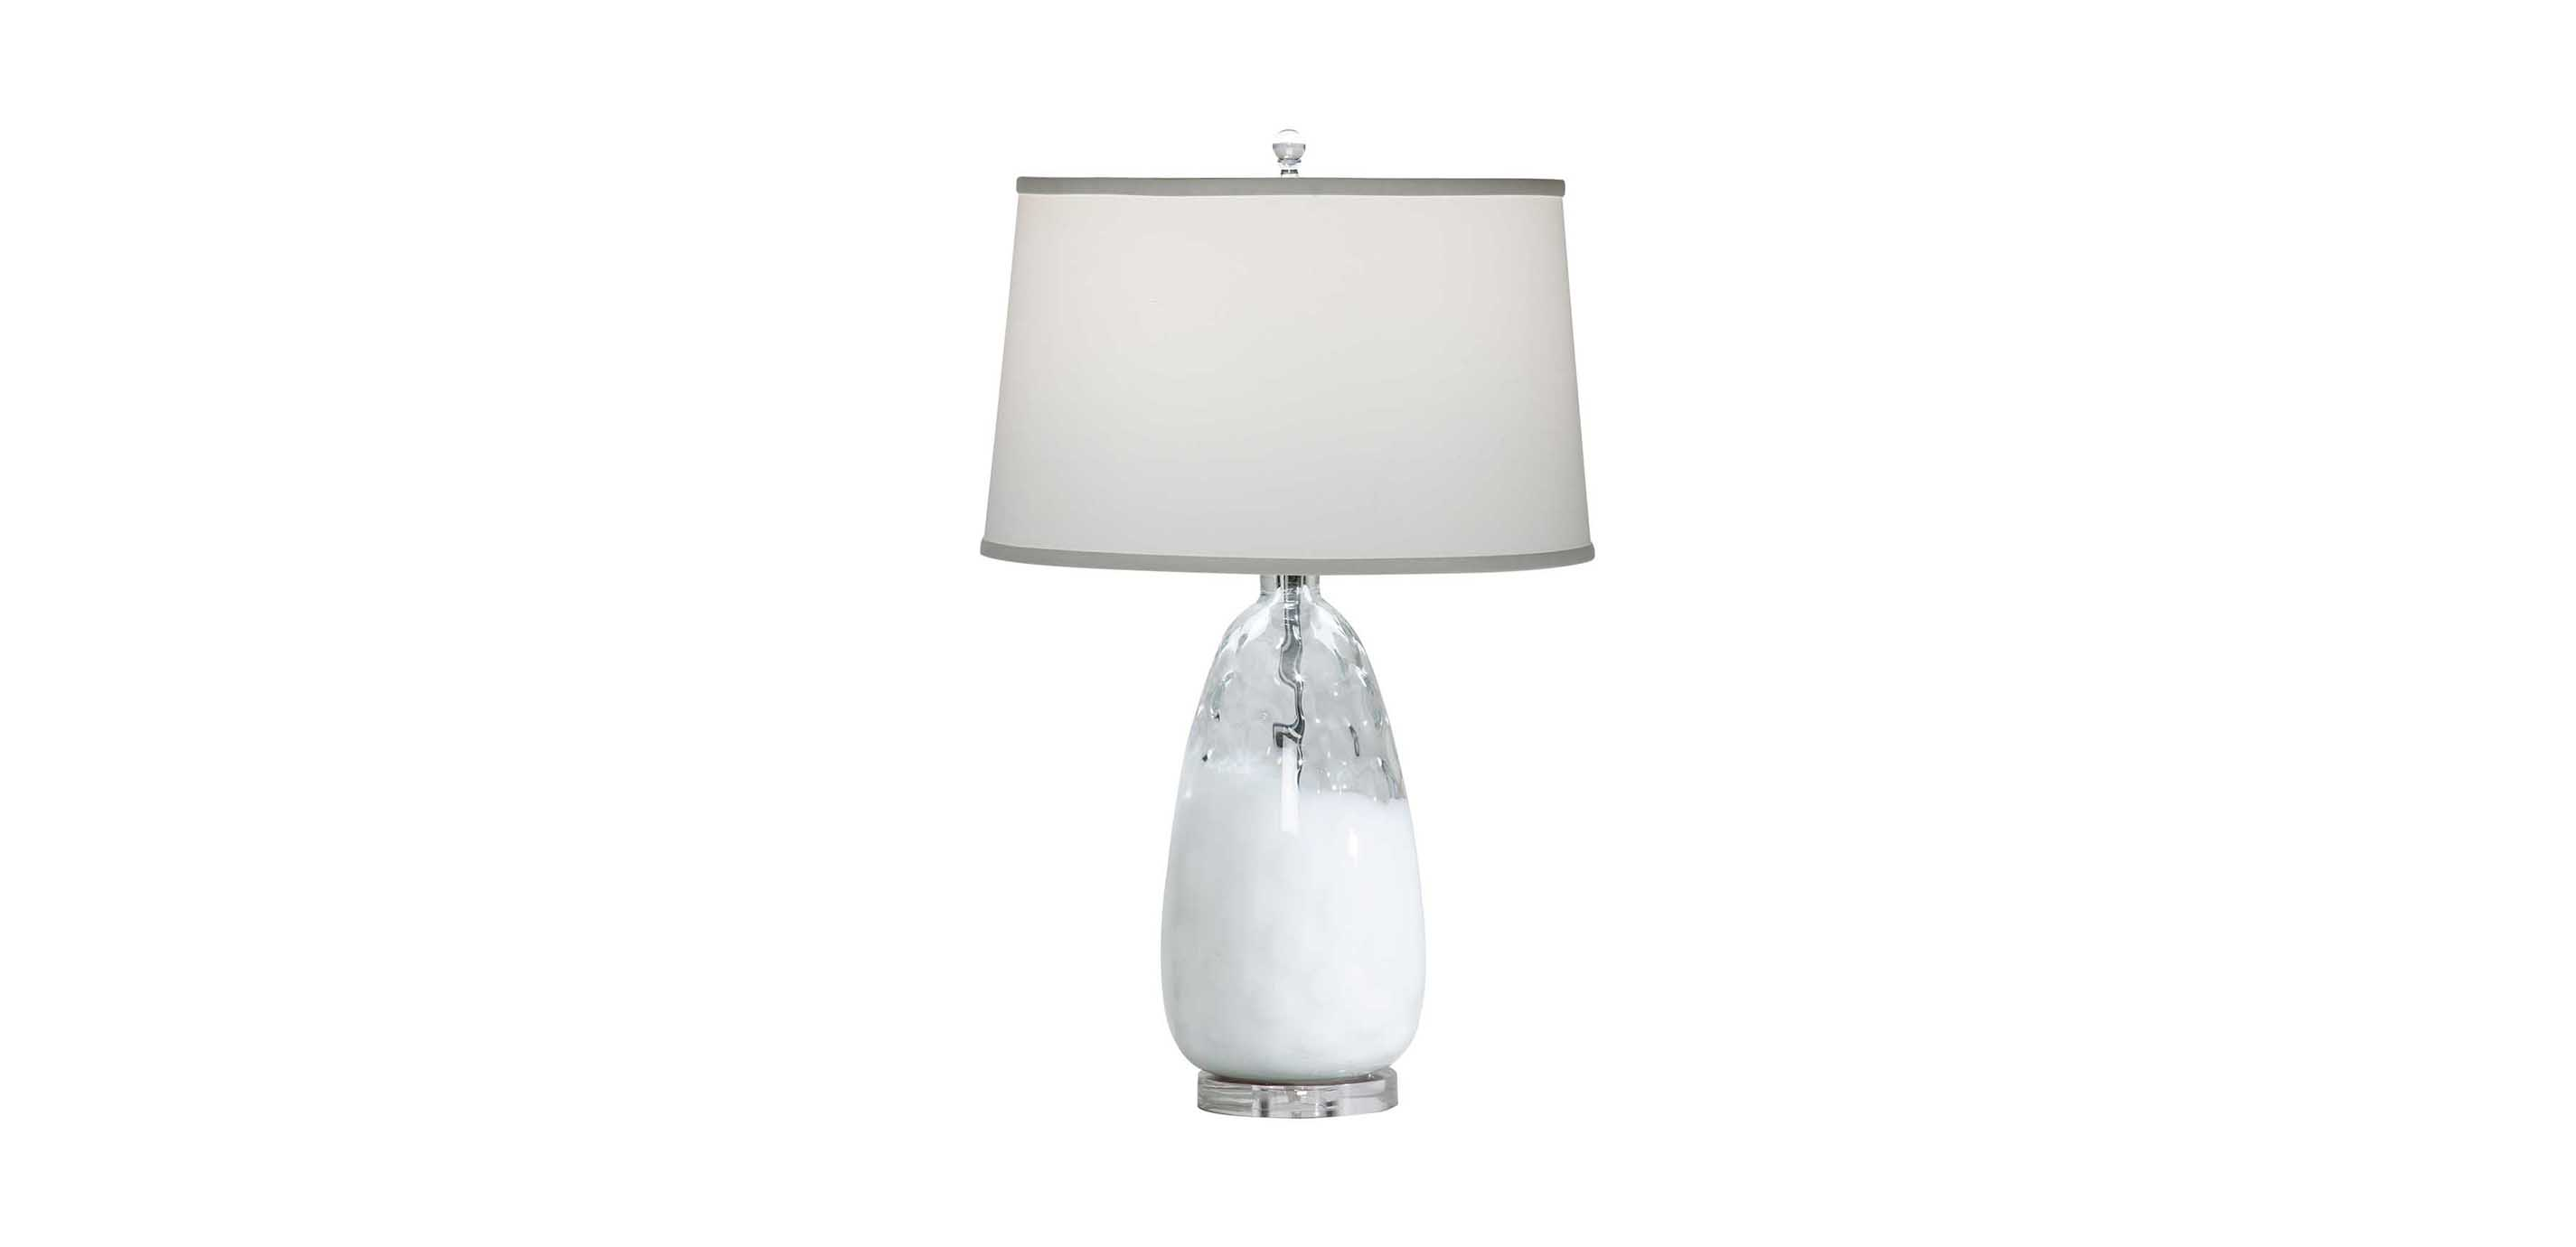 Sienna Table Lamp Table Lamps Ethan Allen